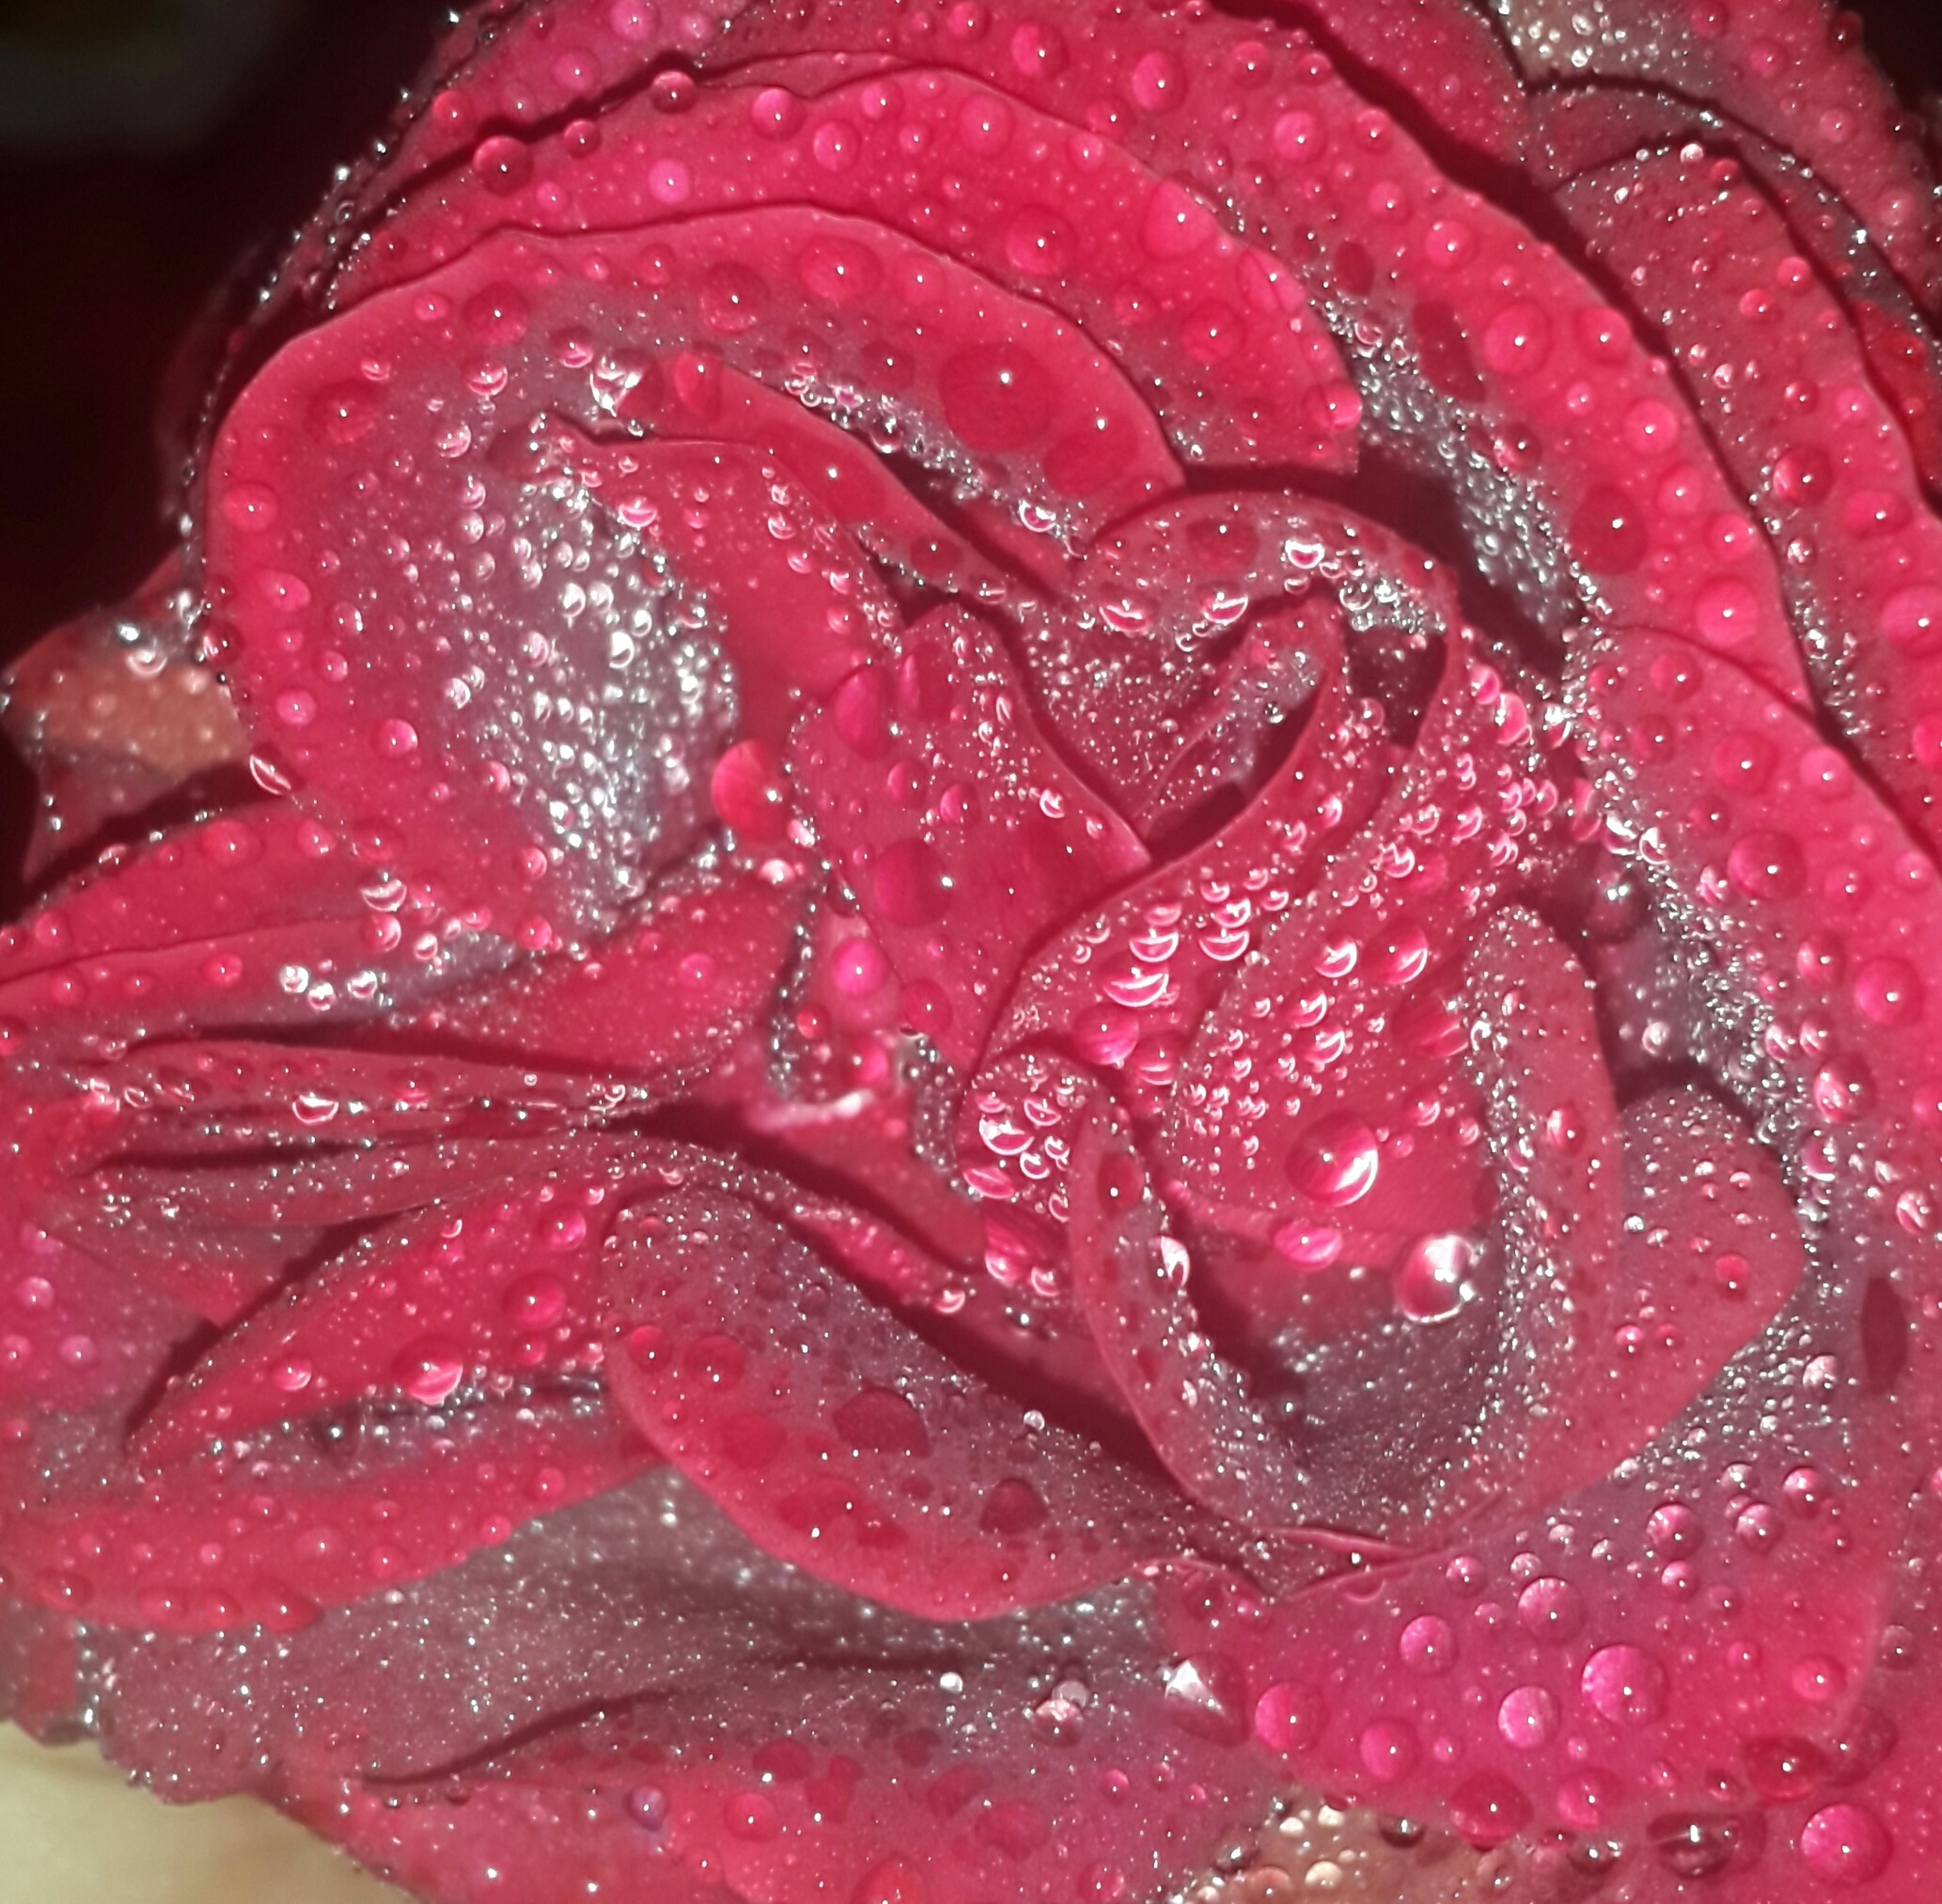 freshness, red, drop, close-up, water, wet, petal, flower, flower head, pink color, fragility, rose - flower, food and drink, high angle view, beauty in nature, single flower, no people, nature, indoors, food